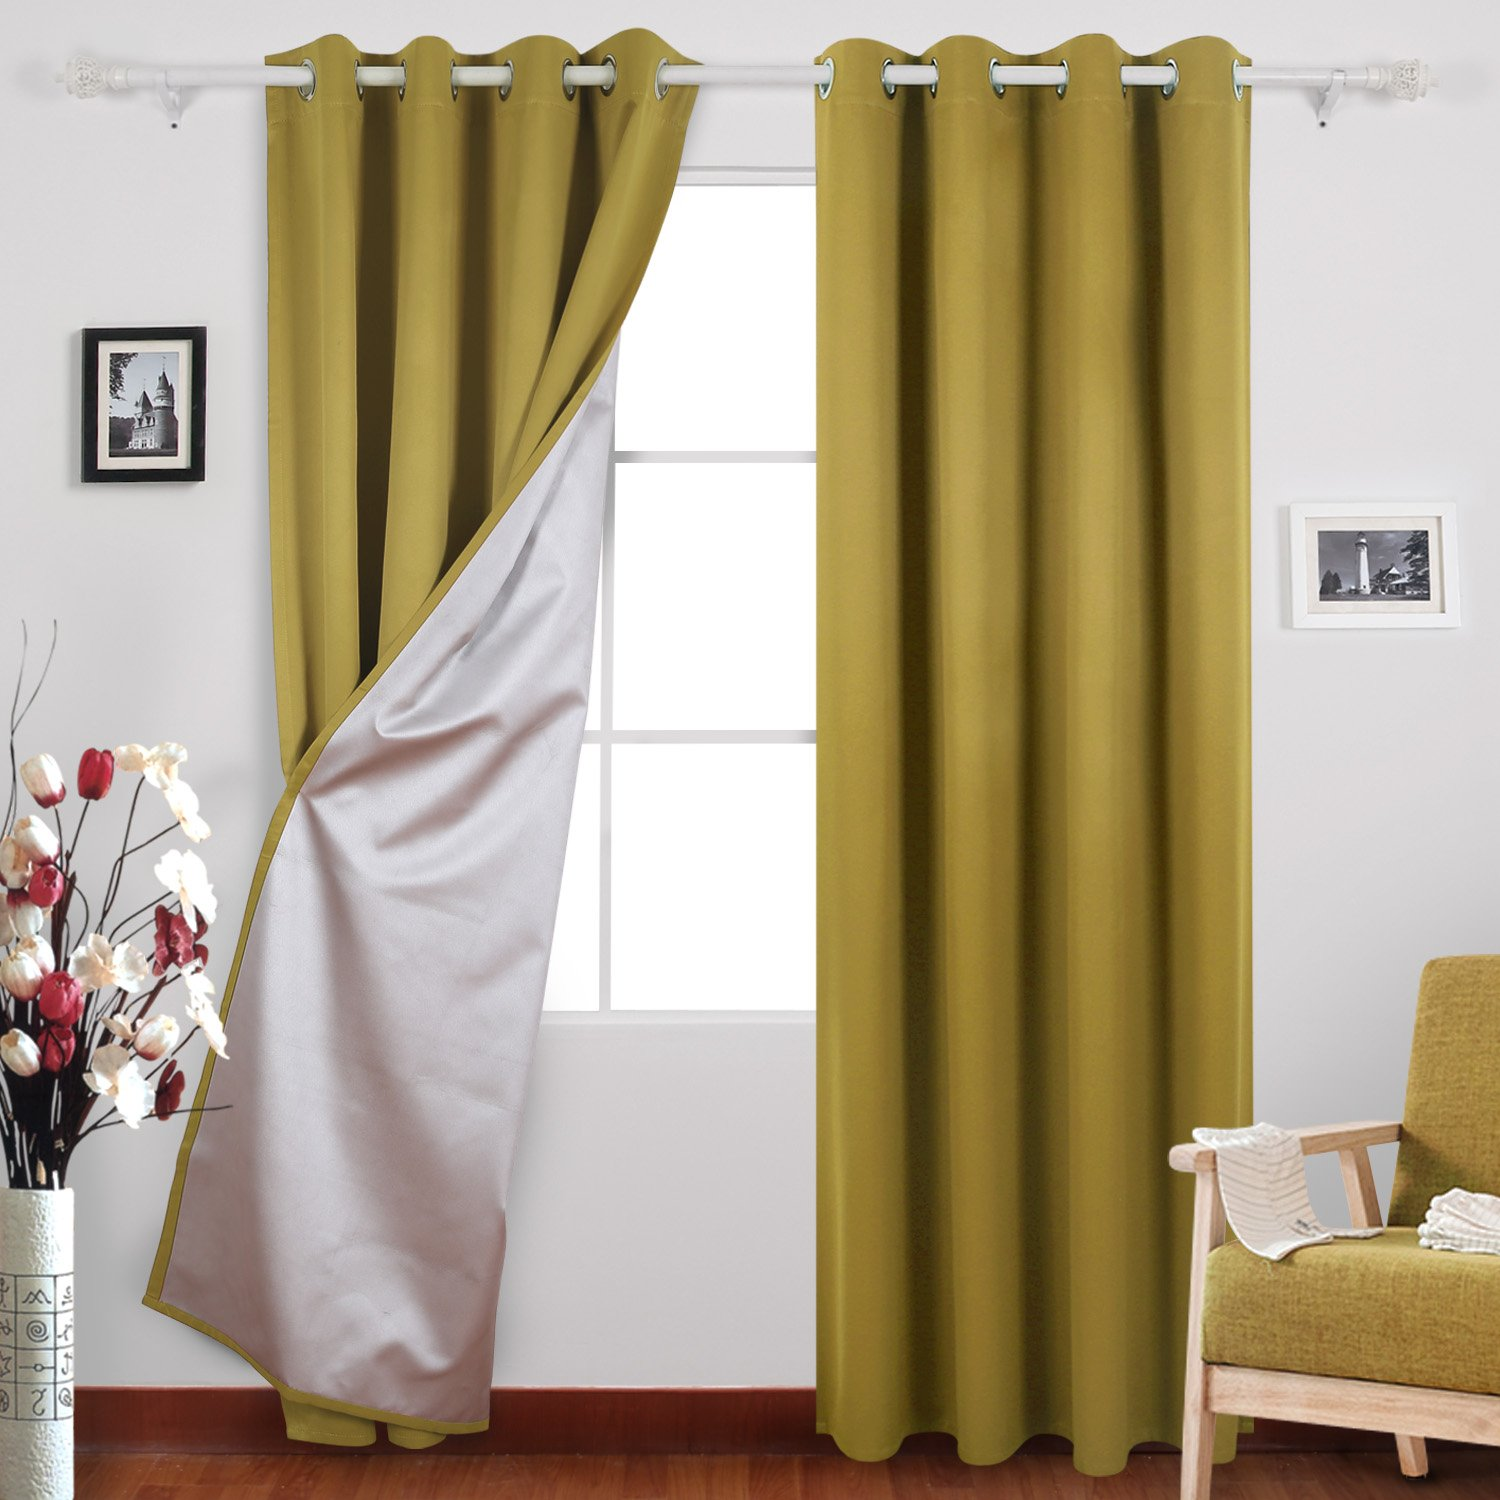 Deconovo Thermal Insulated Blackout Curtains with Backside Silver Window Treatments Curtains Set for Boys Room